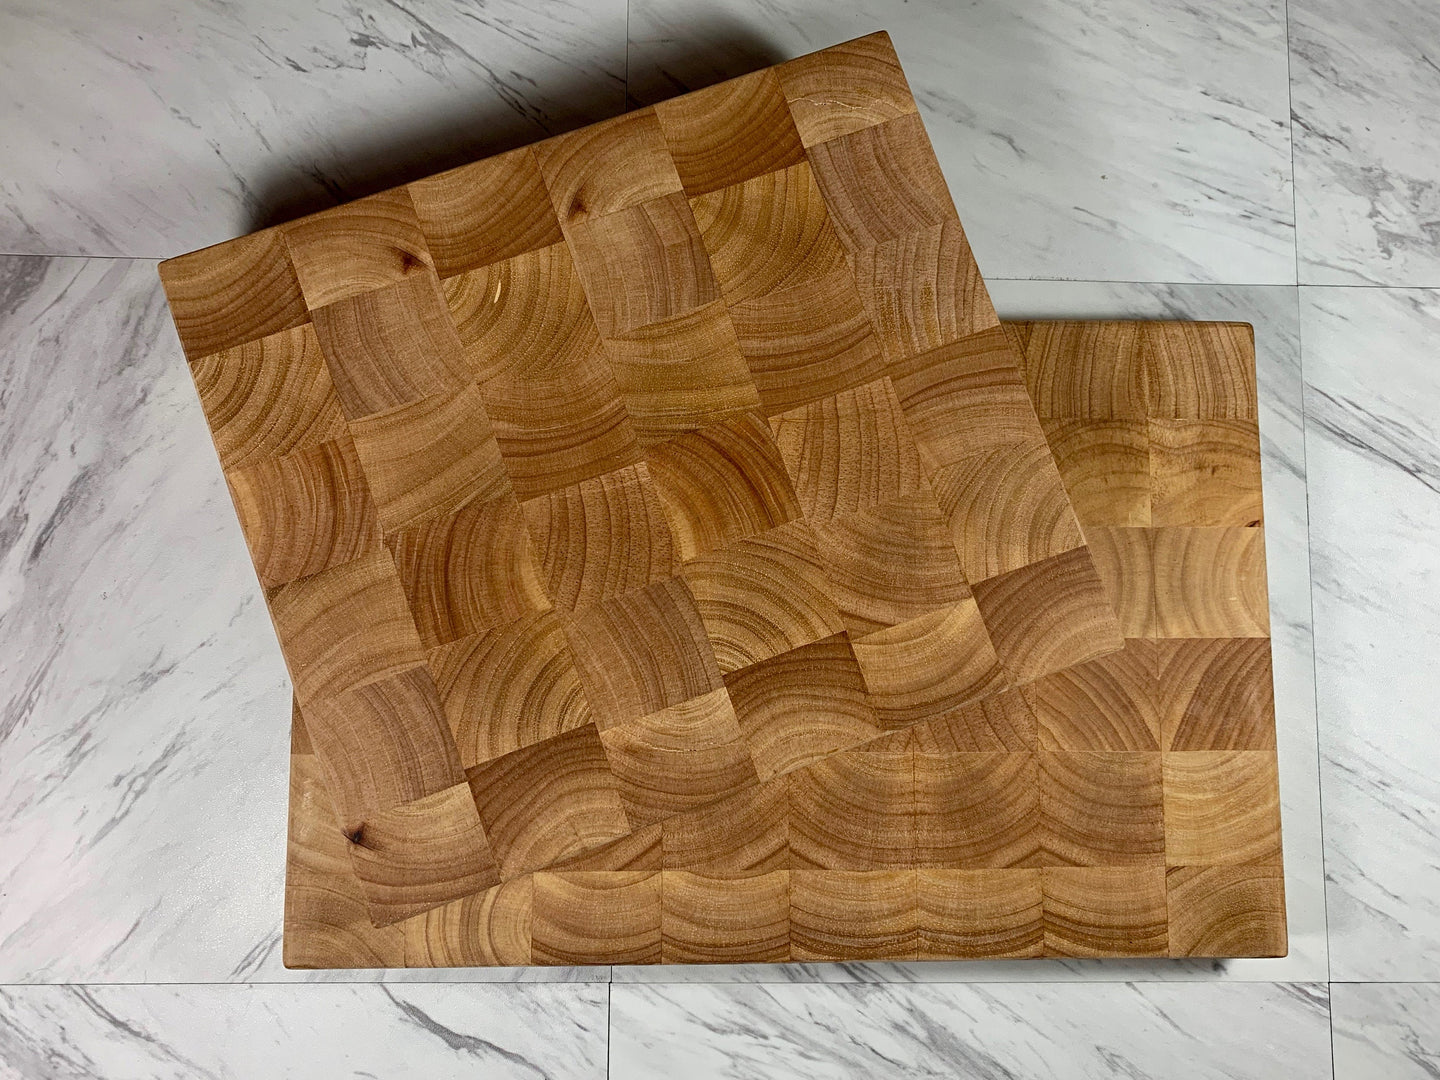 End Grain Cutting Board - Hevea Wood